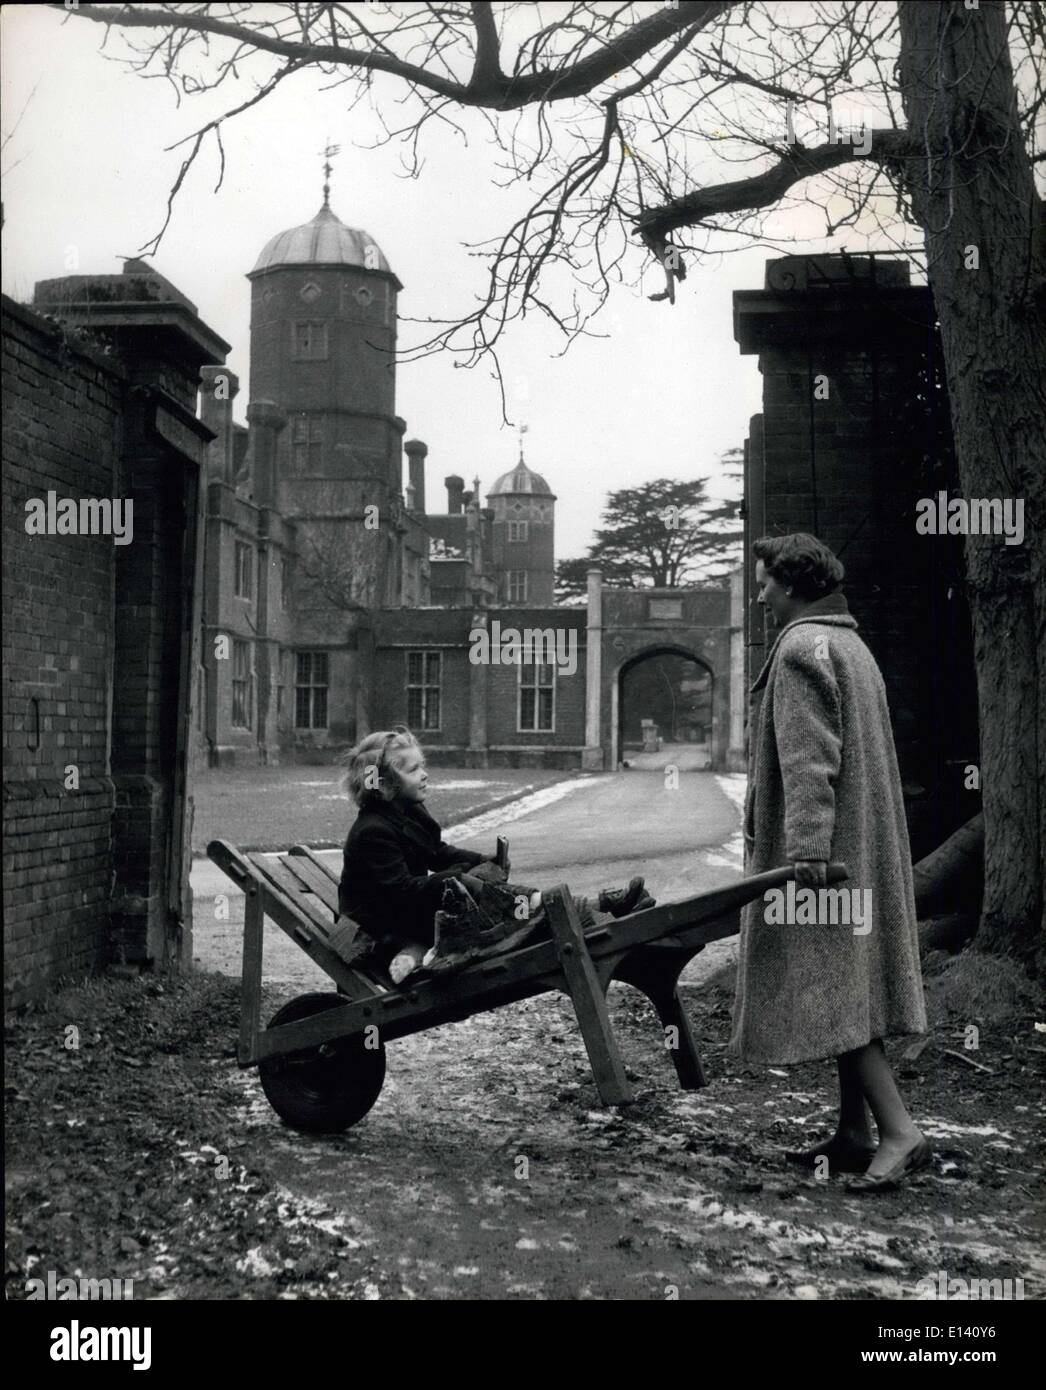 Mar. 31, 2012 - A countess collects wood for the fires of the ancestral home: Lady Darnley wheels a barrow of legs to Cobham hall, when wood is used as an economy messure whenever possible. Her daughter Harriot has a ride. - Stock Image